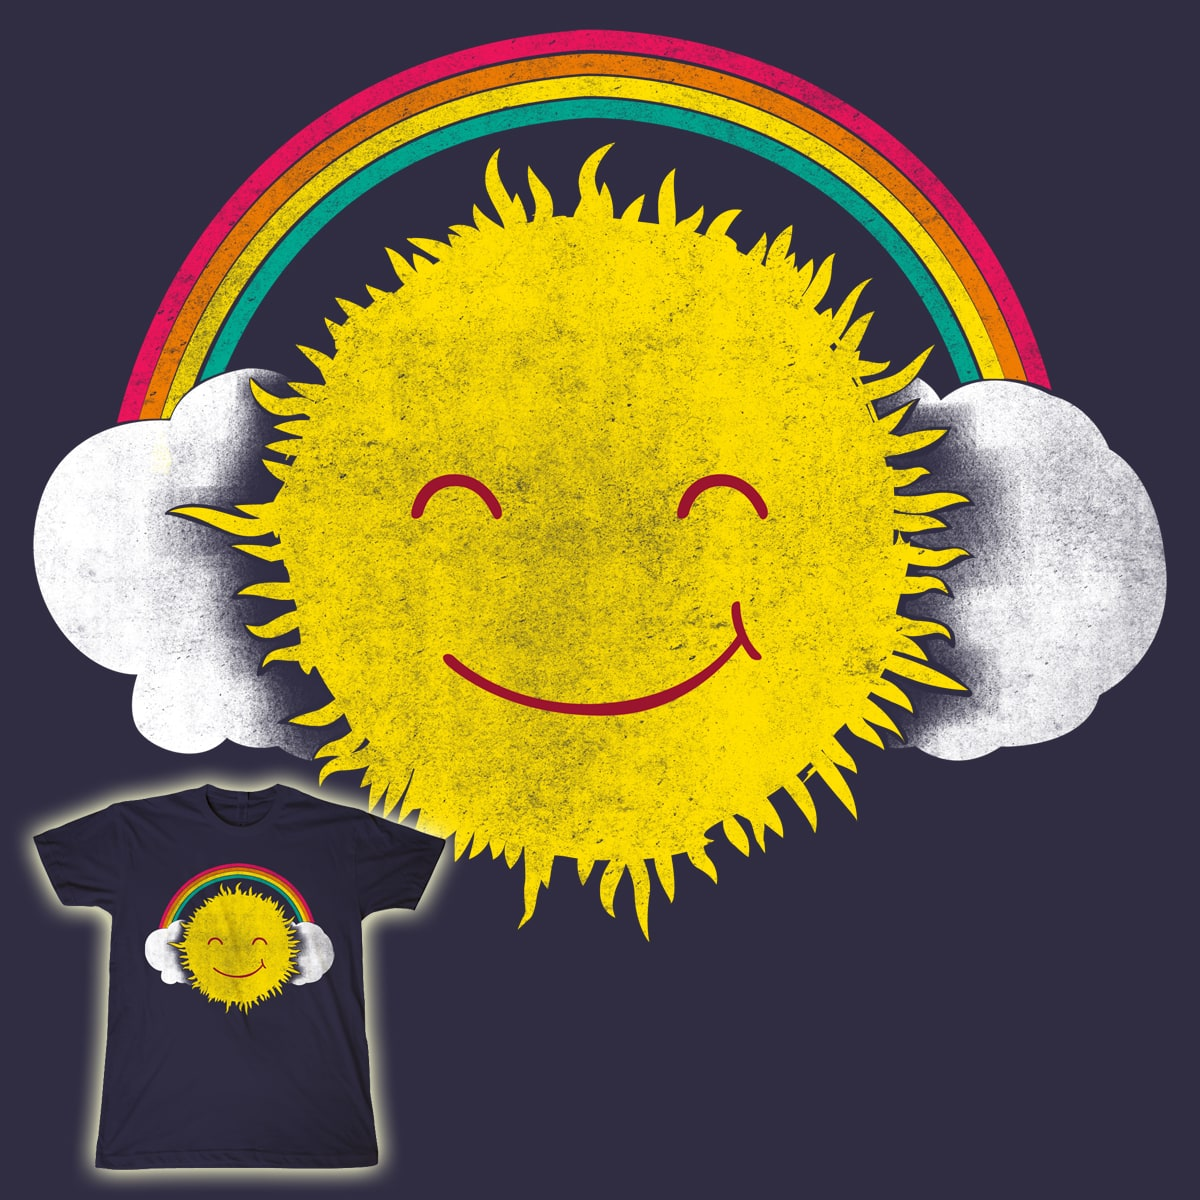 Summer Songs by mainial on Threadless